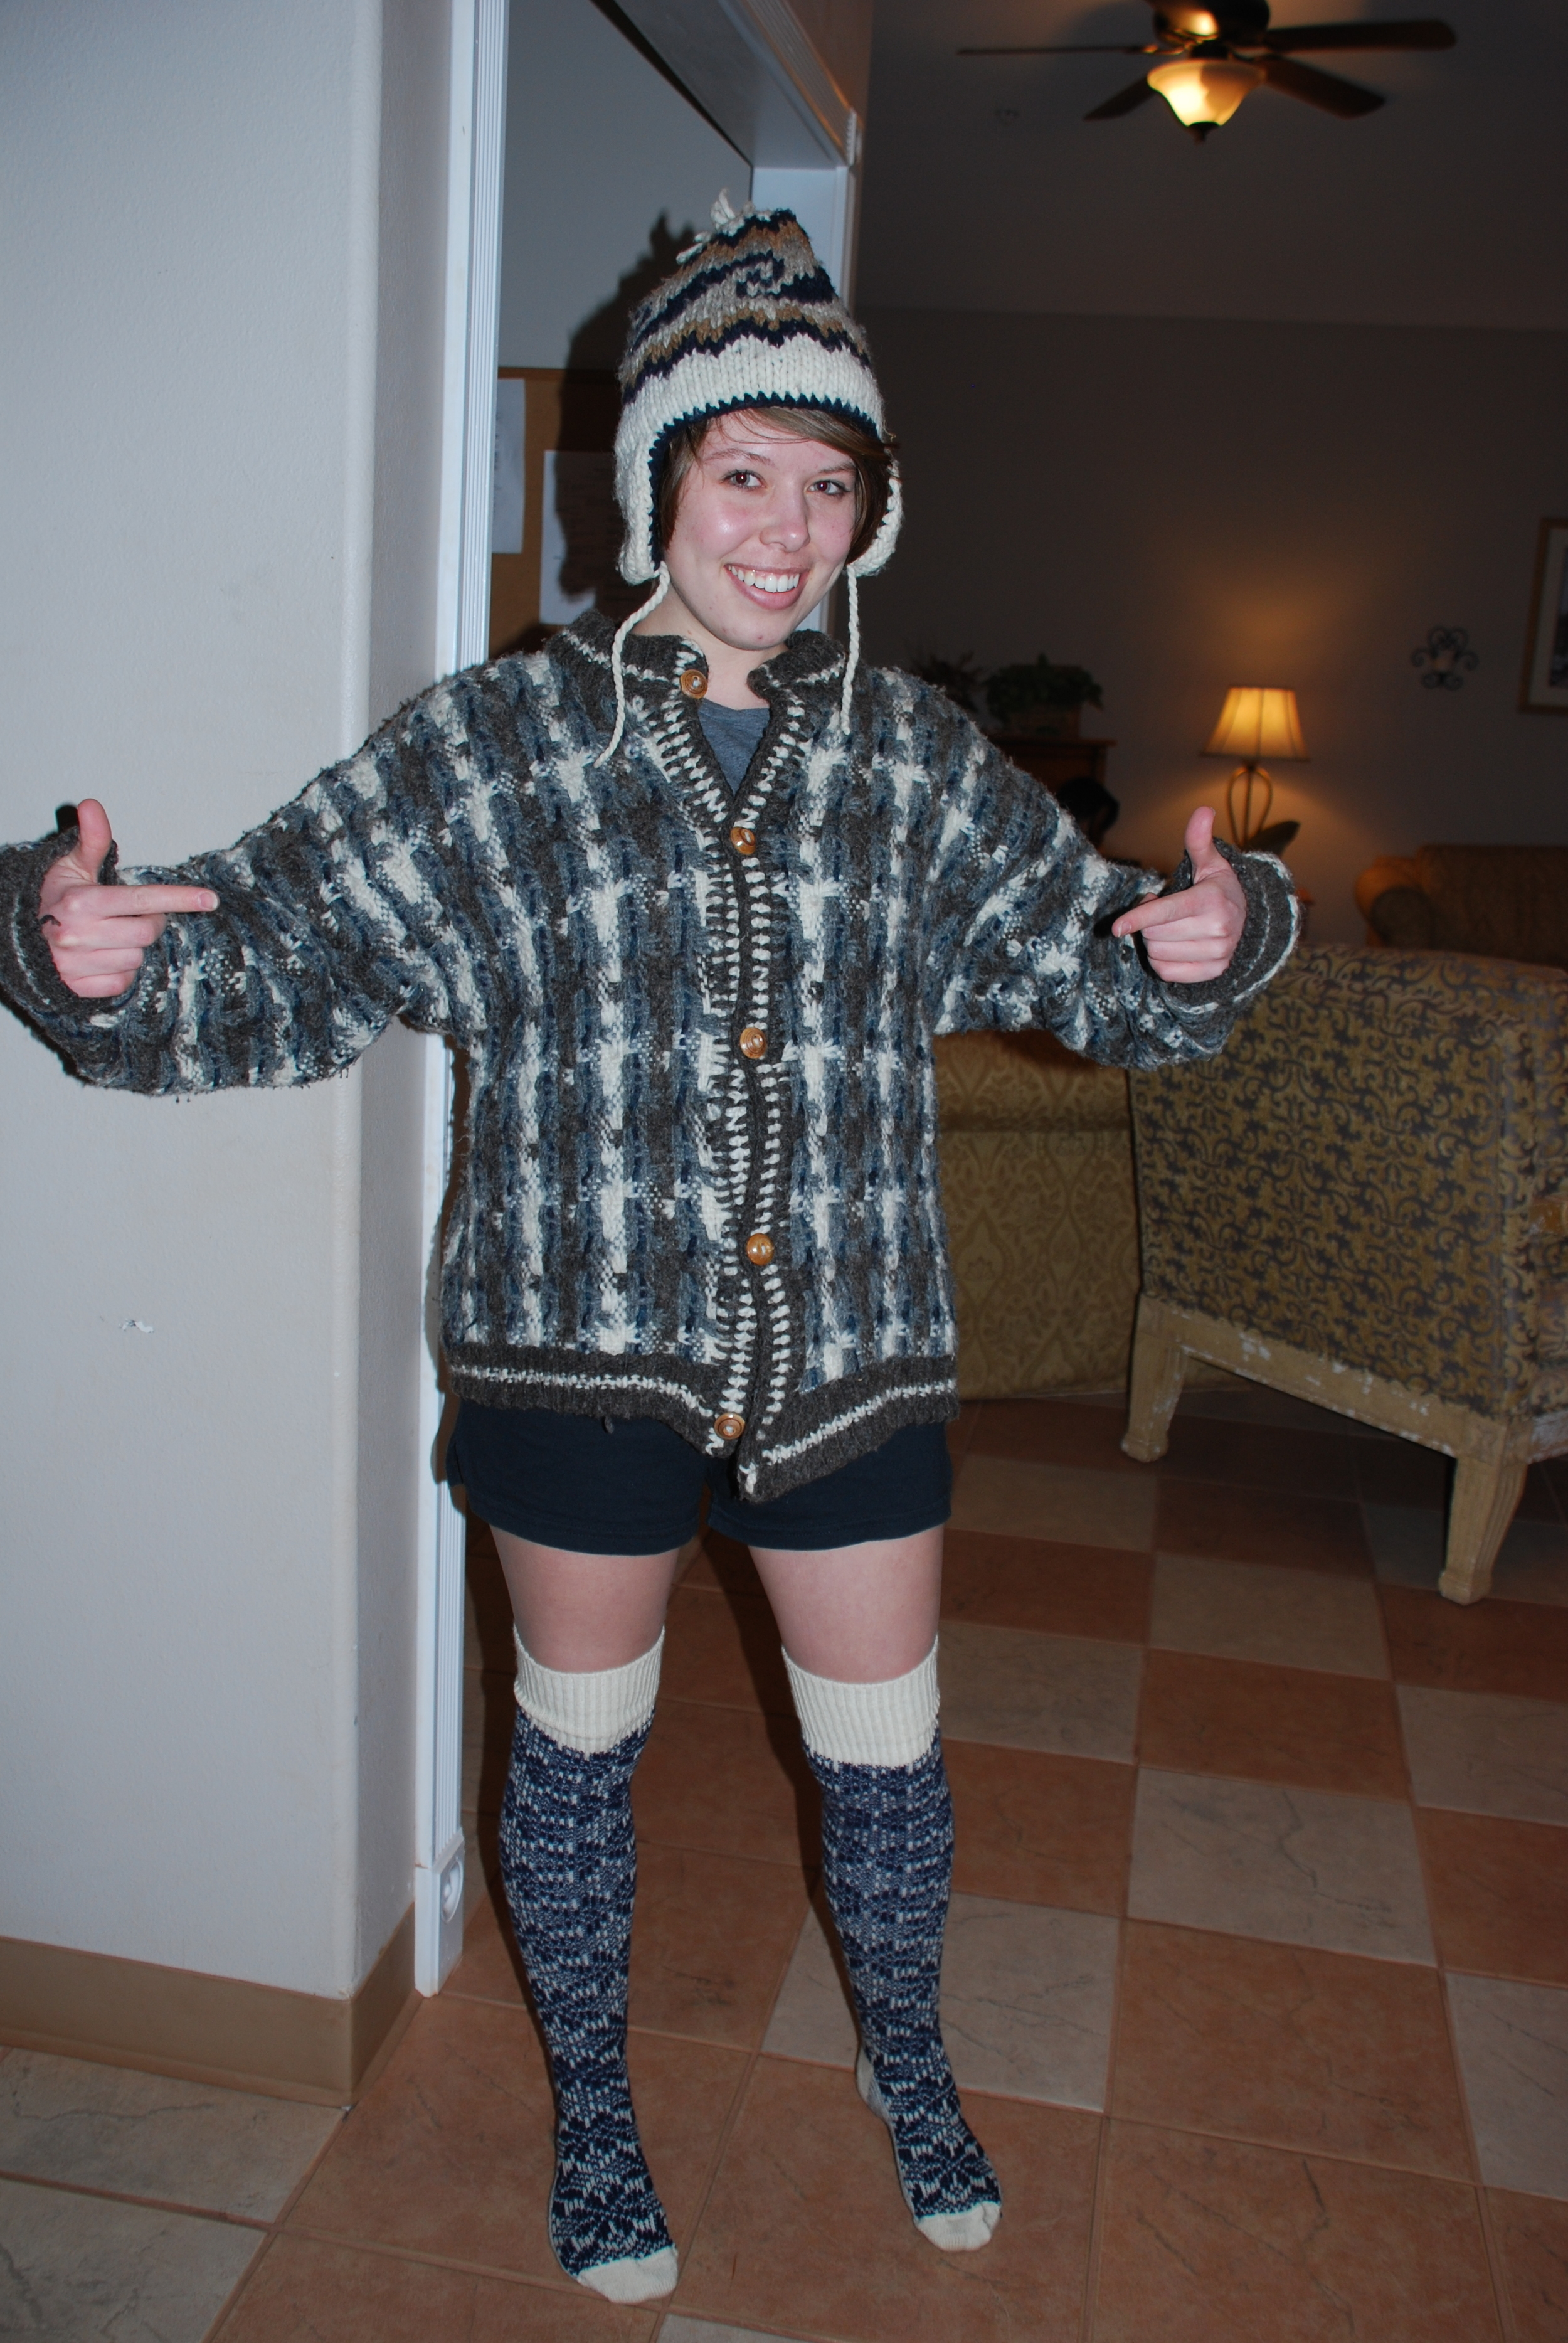 Dressed in cheap used clothing finds during a trip with a sudden change in weather. We weren't winning any beauty awards that's for sure, but we stayed on budget!